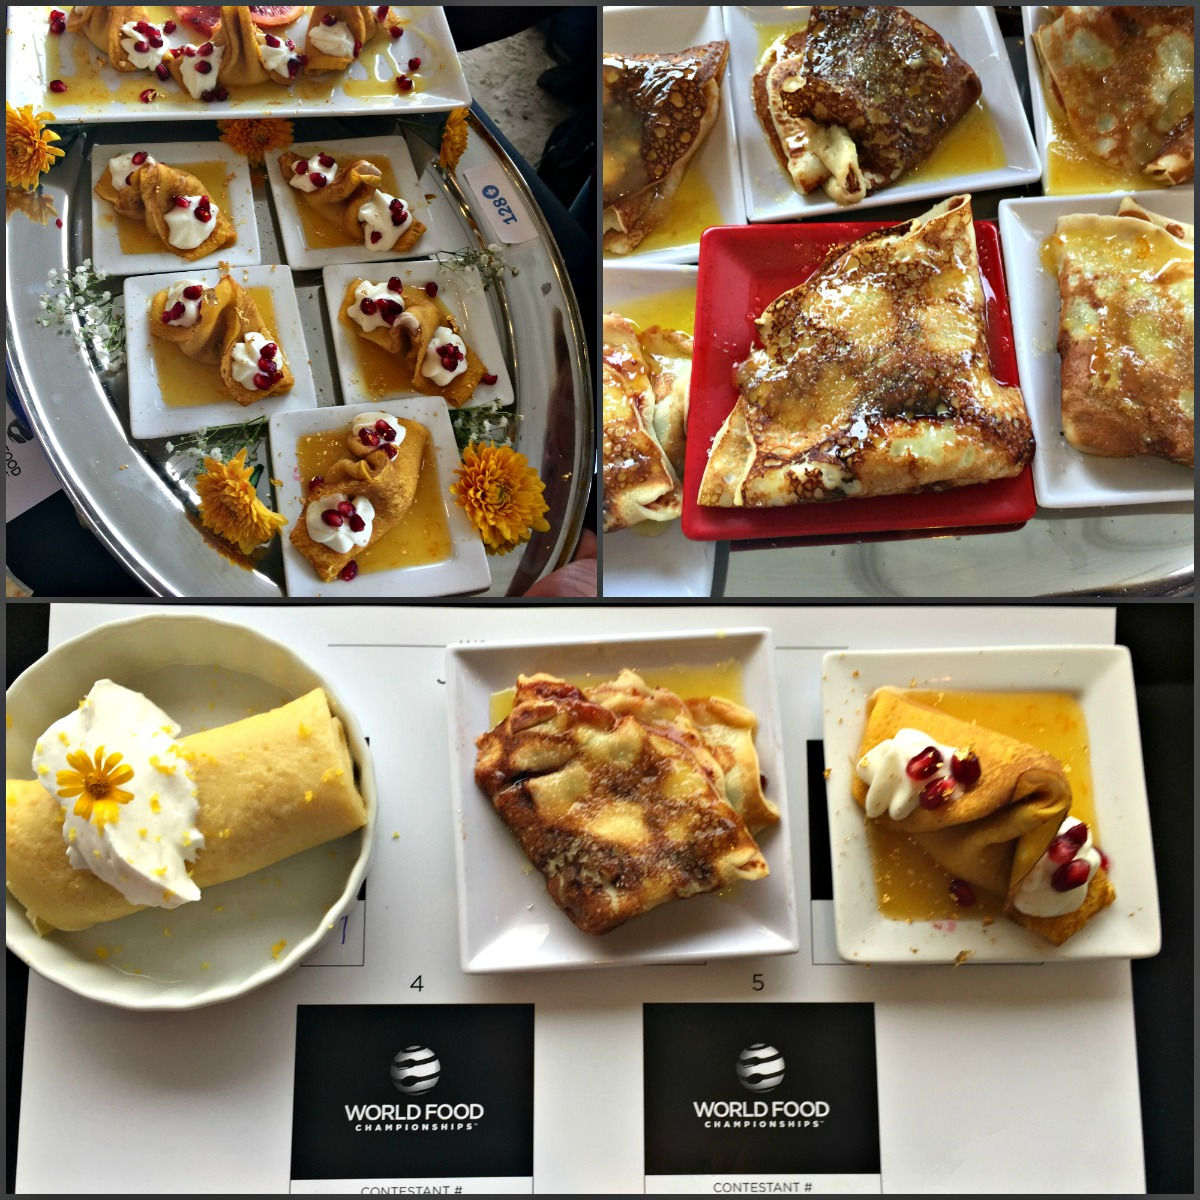 Judge Food Competition Using EAT Method at World Food Championships